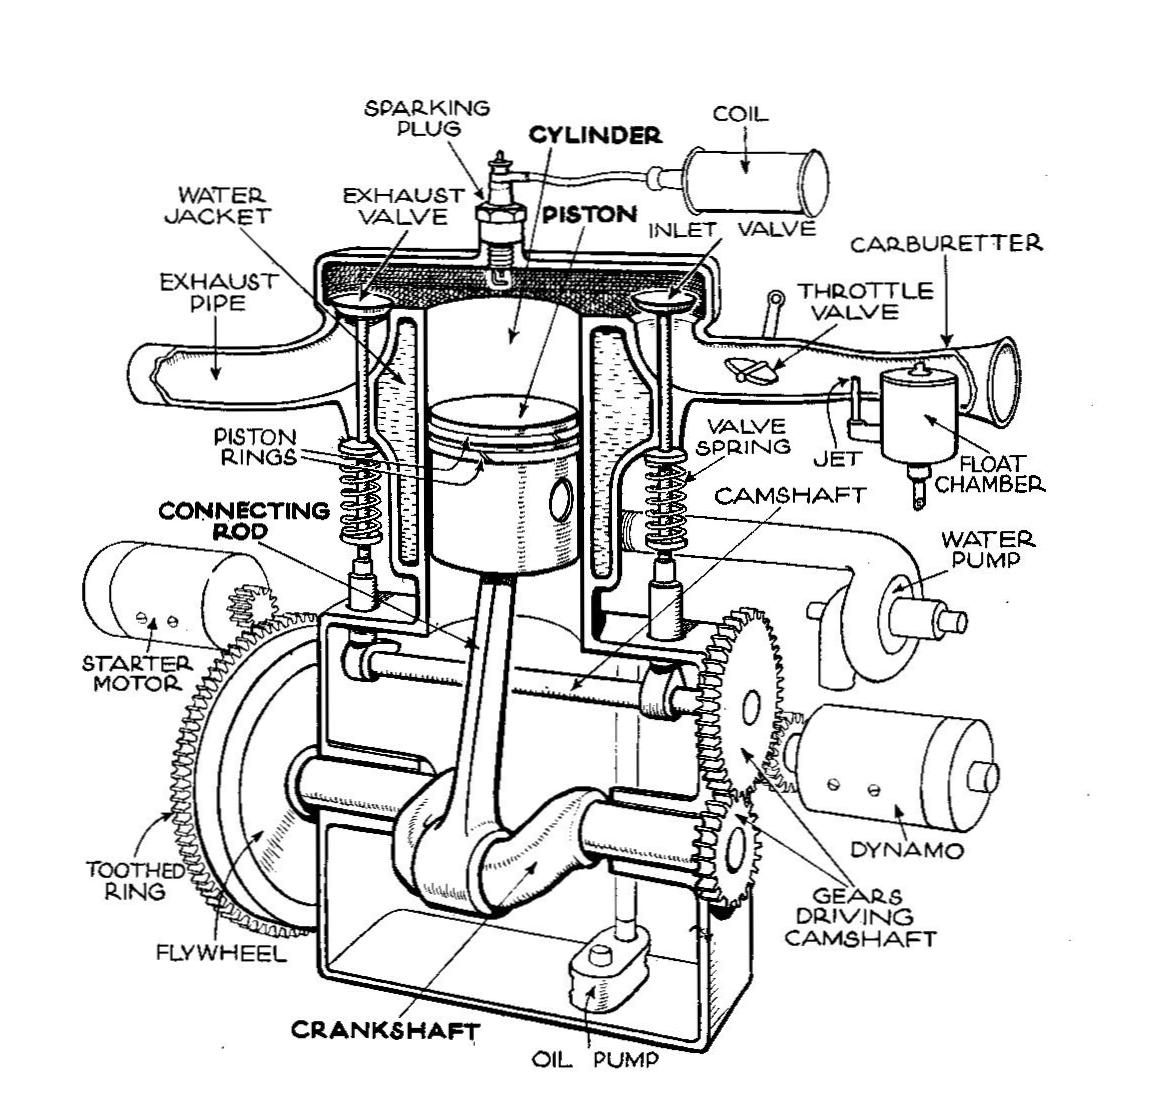 Flathead_engine on Honda Accord Distributor Wiring Diagram